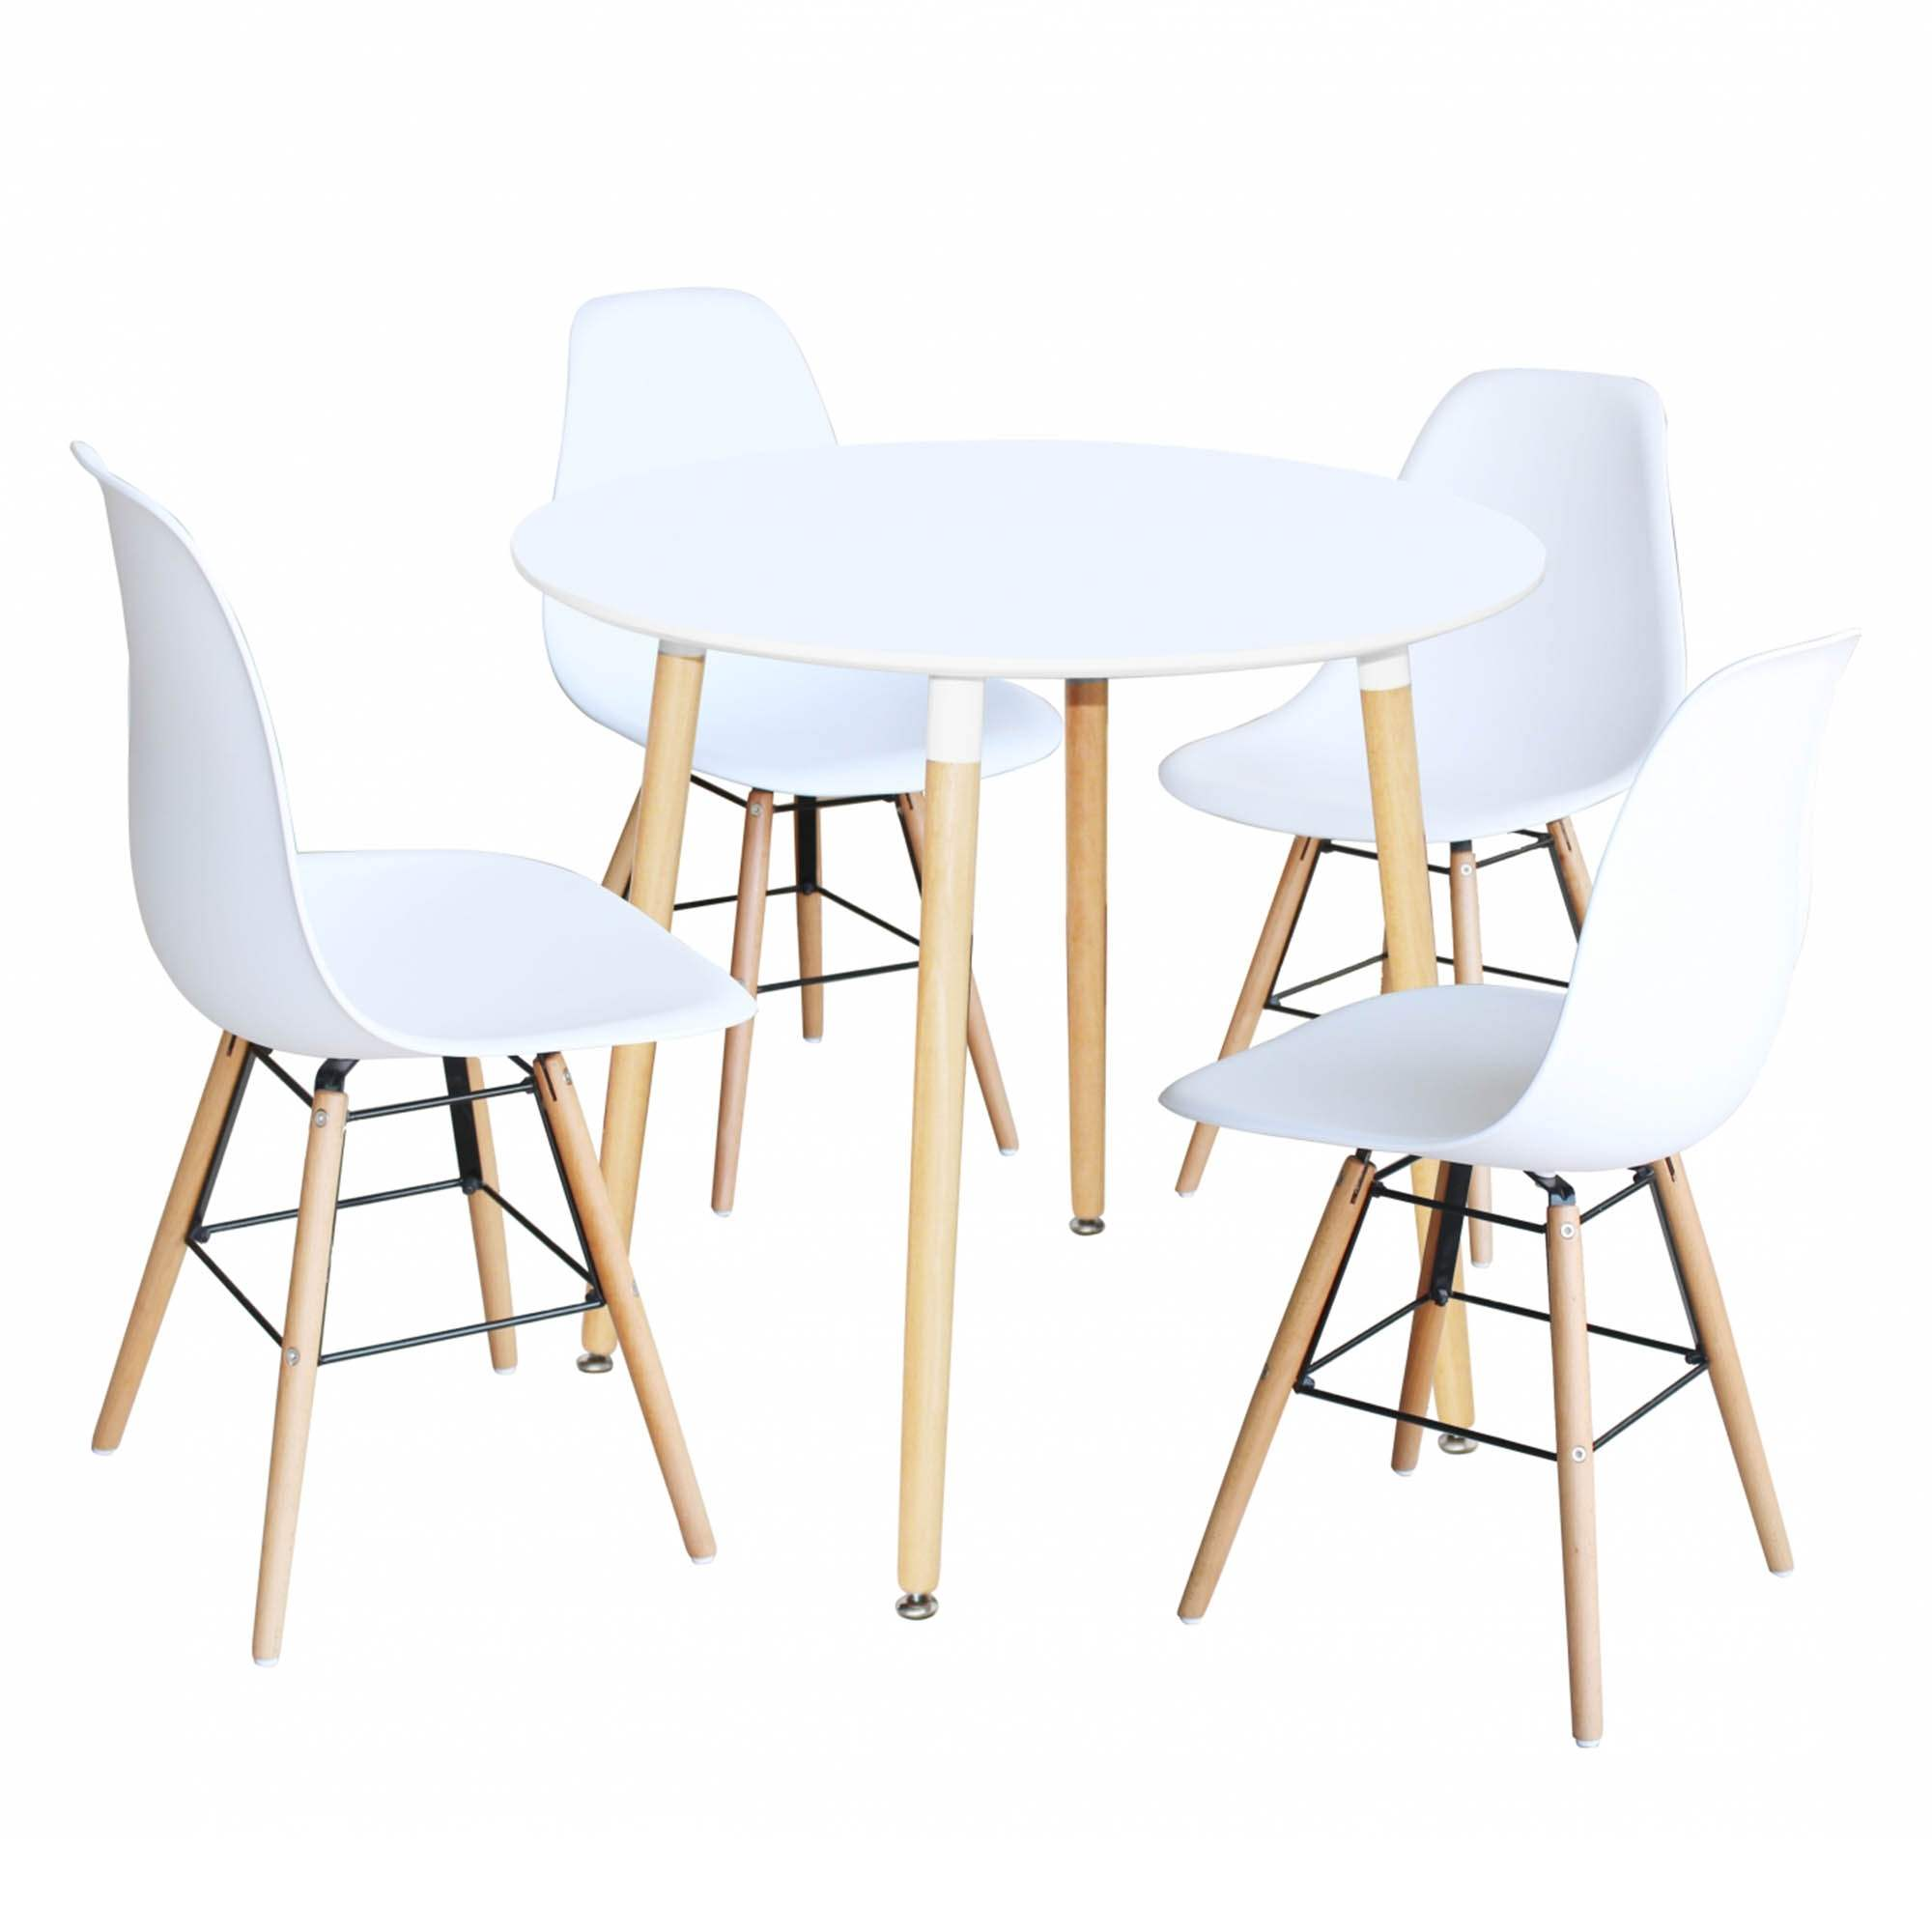 Chaises Blanche Scandinave Ensemble Table Ronde Rimma 4 Chaise Blanches Scandinaves